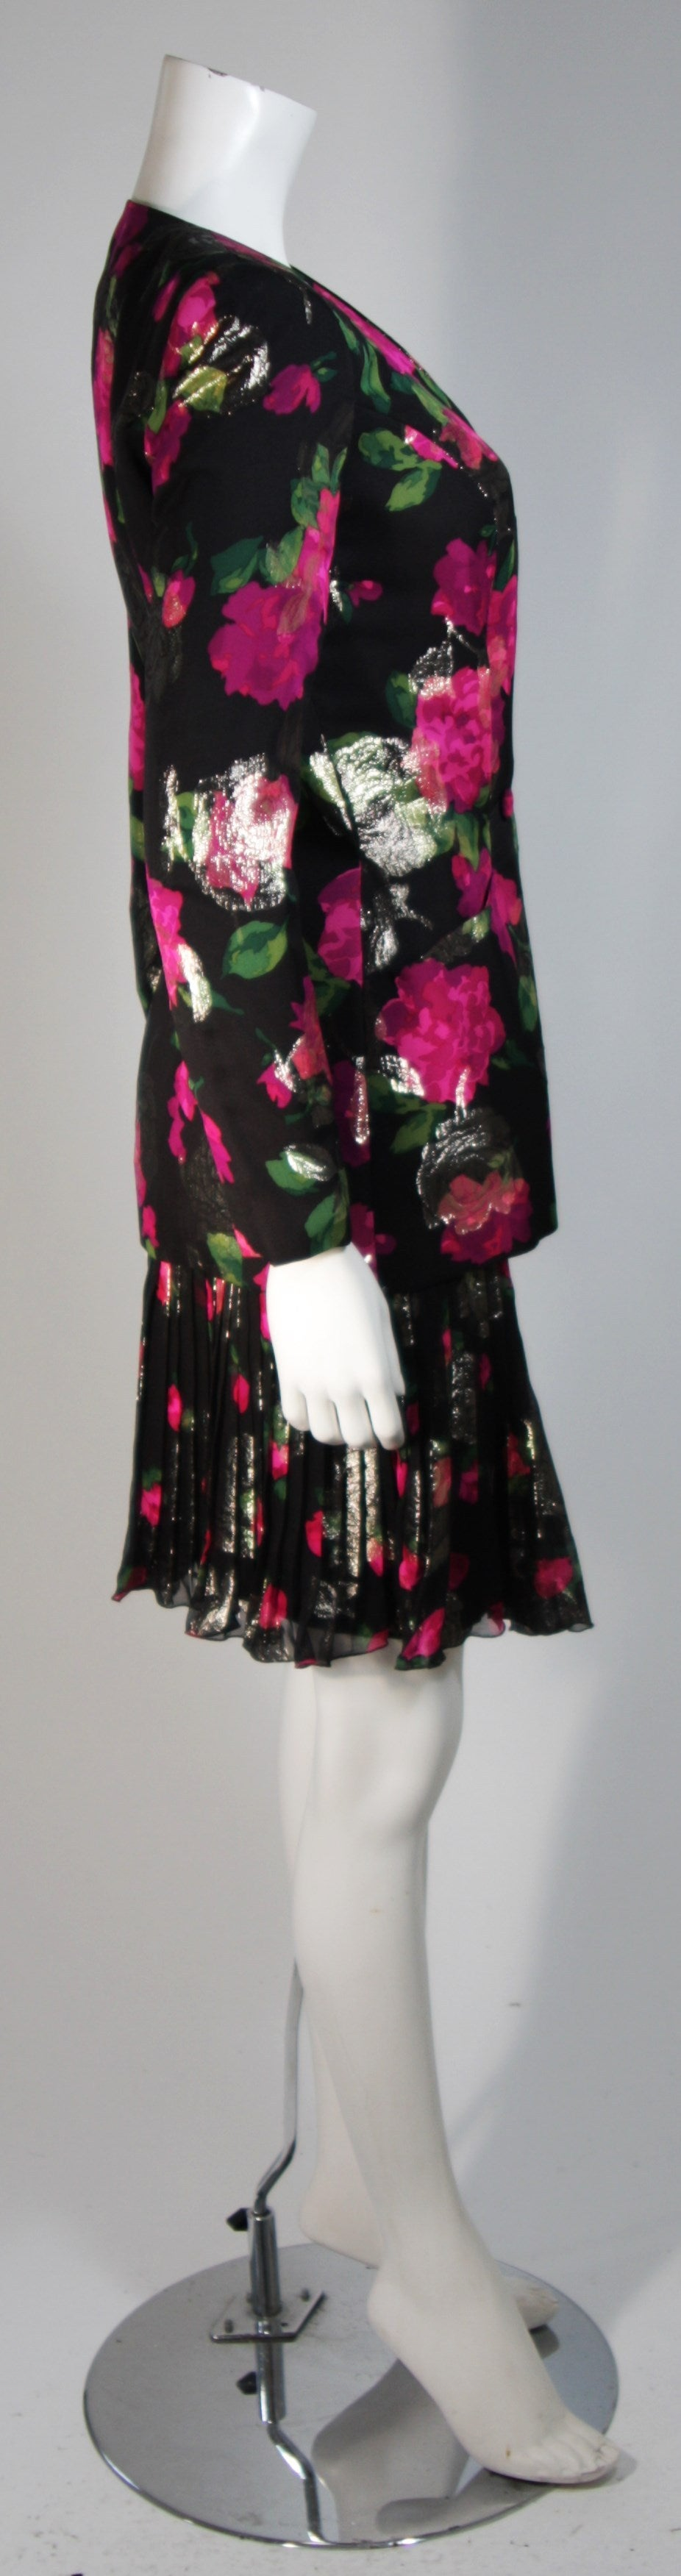 Vicky Tiel Black SilkSuit with Floral Motif and Pleated Chiffon Skirt Size Small For Sale 1